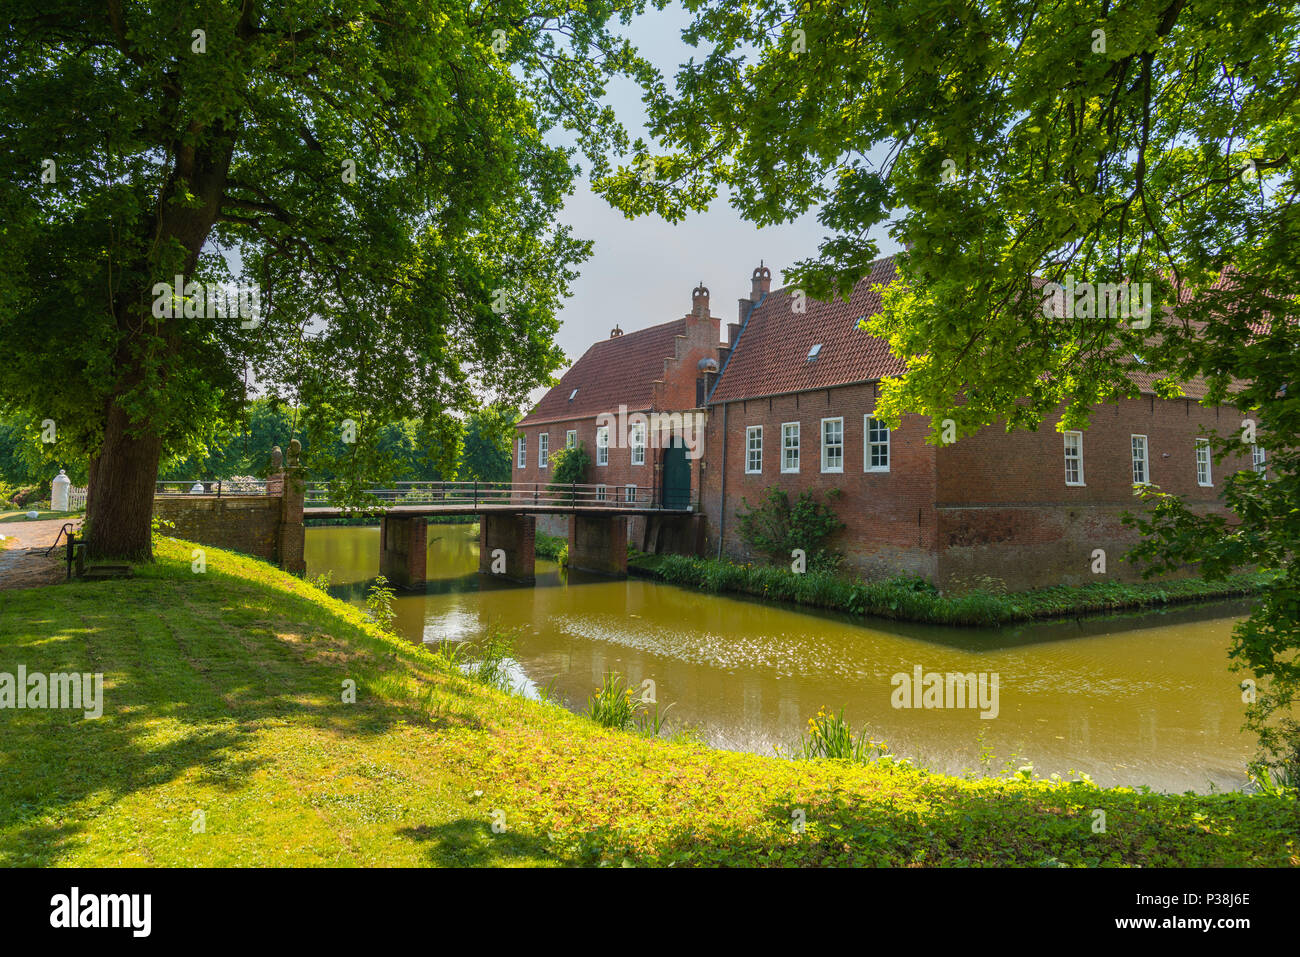 Moated castle  Castle Hinta, former seat of an East Frisian chieftain,  Hinte, East Frisia, Lower Saxony, Germany - Stock Image